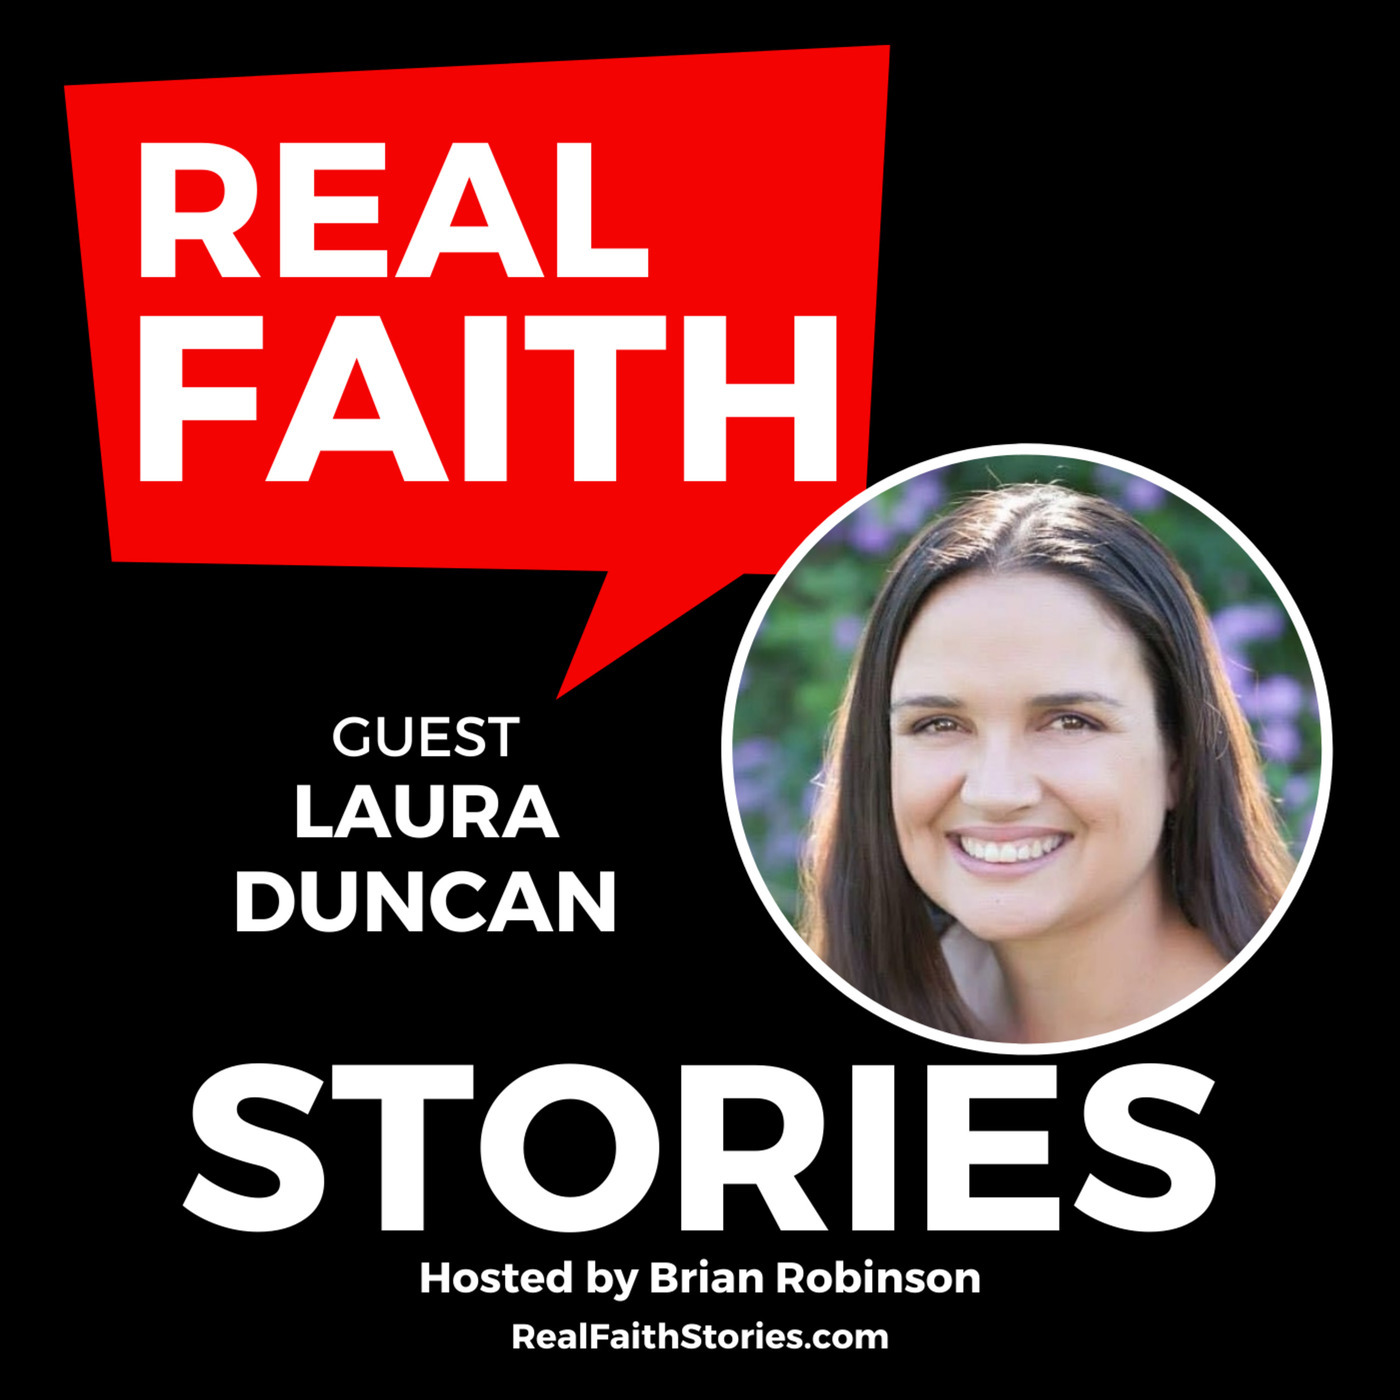 """Real Faith Stories 46: Laura Duncan - """"I Have Four Young Children And My Husband Just Died - Now What?"""""""